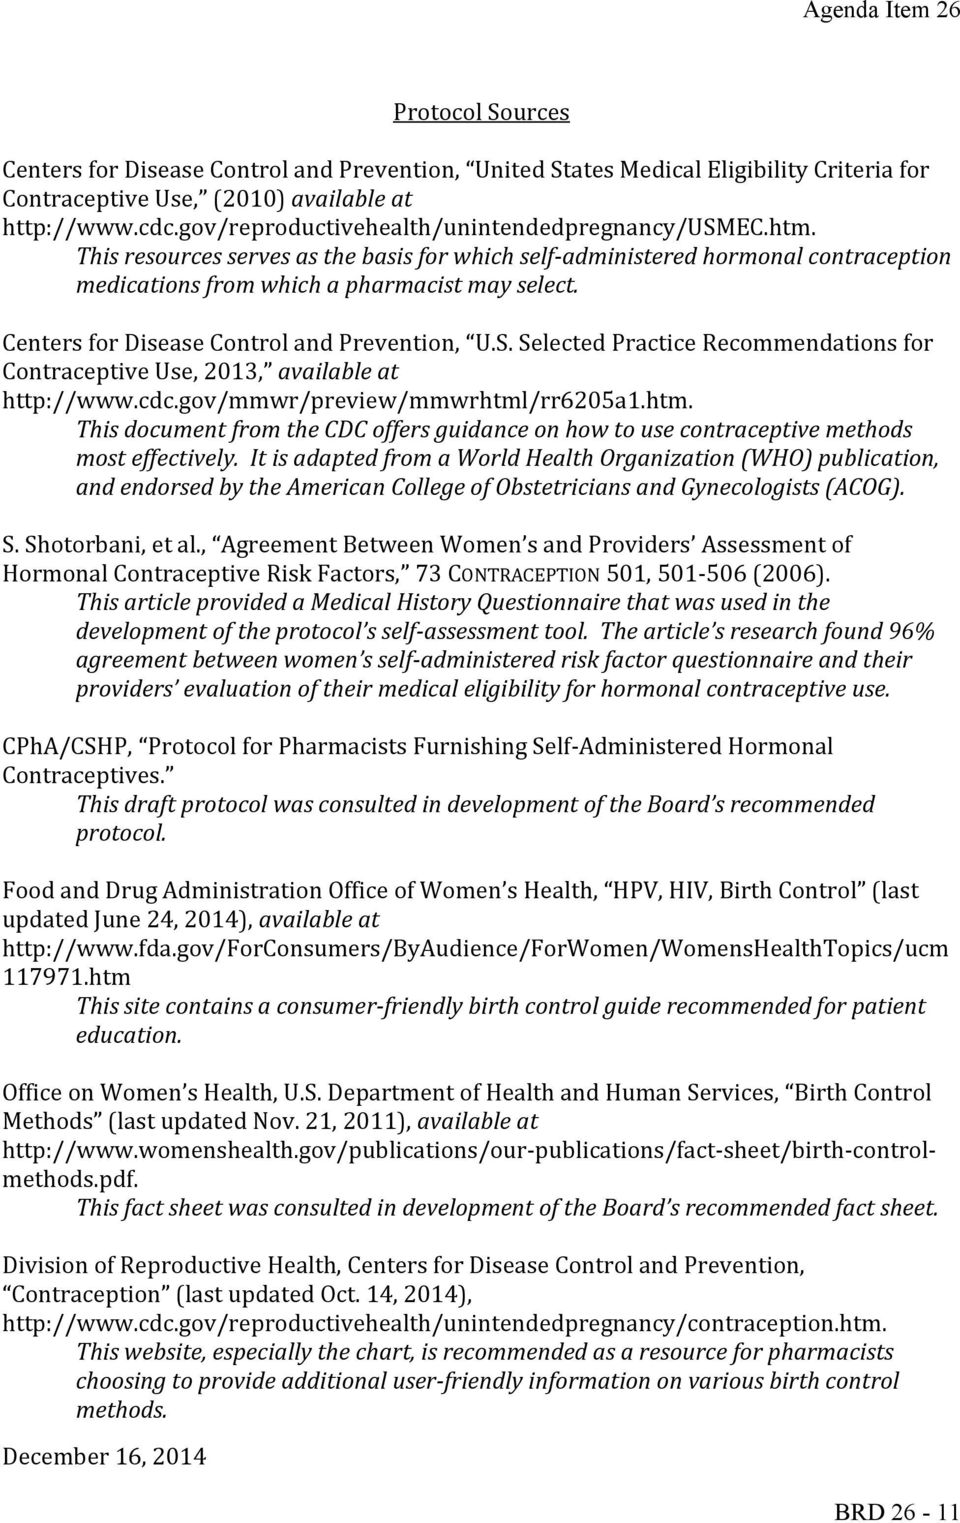 Centers for Disease Control and Prevention, U.S. Selected Practice Recommendations for Contraceptive Use, 2013, available at http://www.cdc.gov/mmwr/preview/mmwrhtml